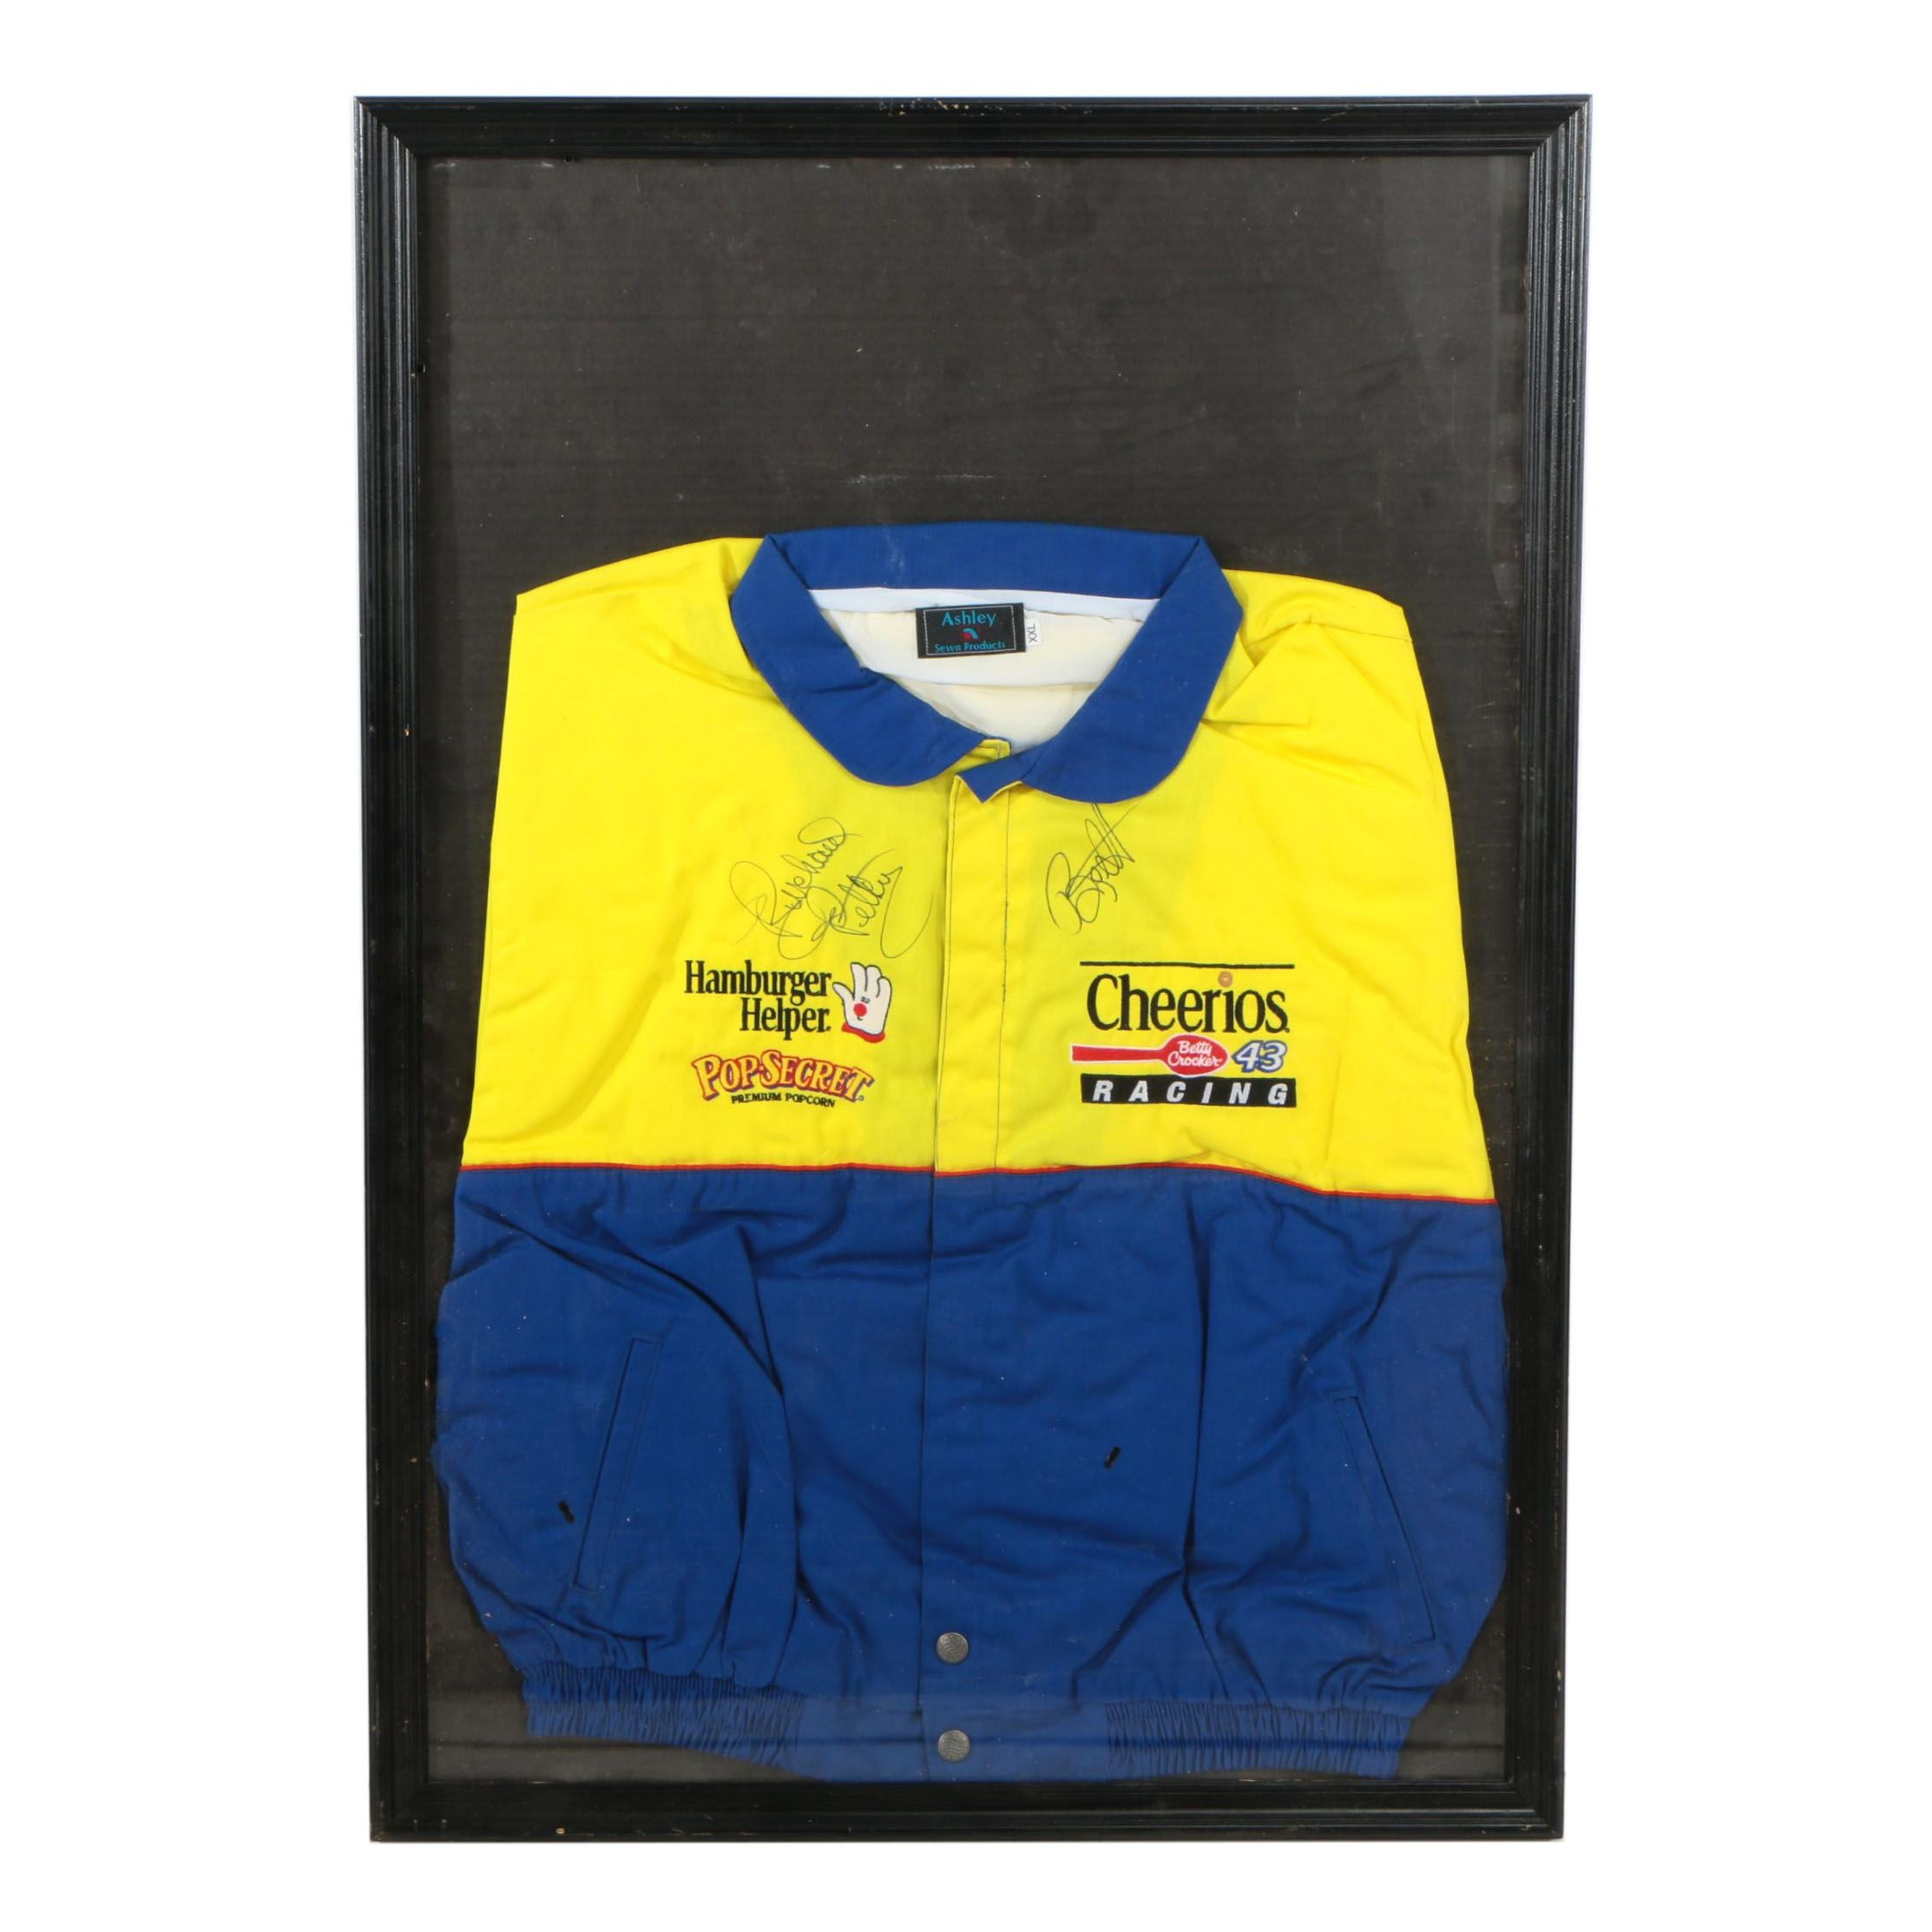 Framed Richard Petty and Bobby Labonte Autographed NASCAR #43 Racing Jacket